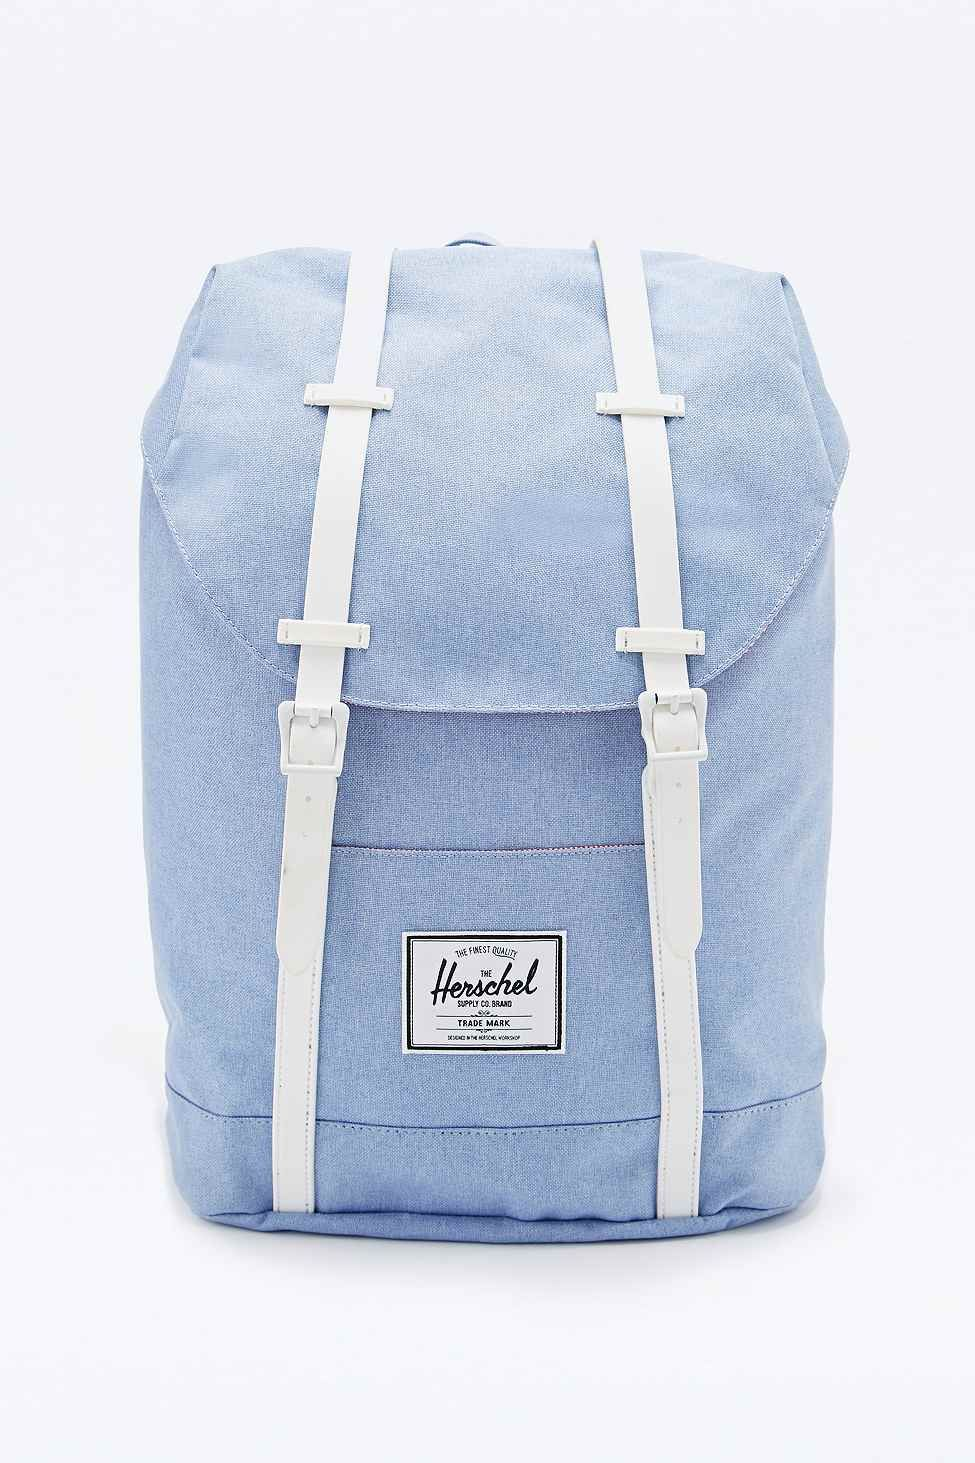 Herschel Supply co. Retreat Chambray Backpack in Blue   Talking ... 74090a540d